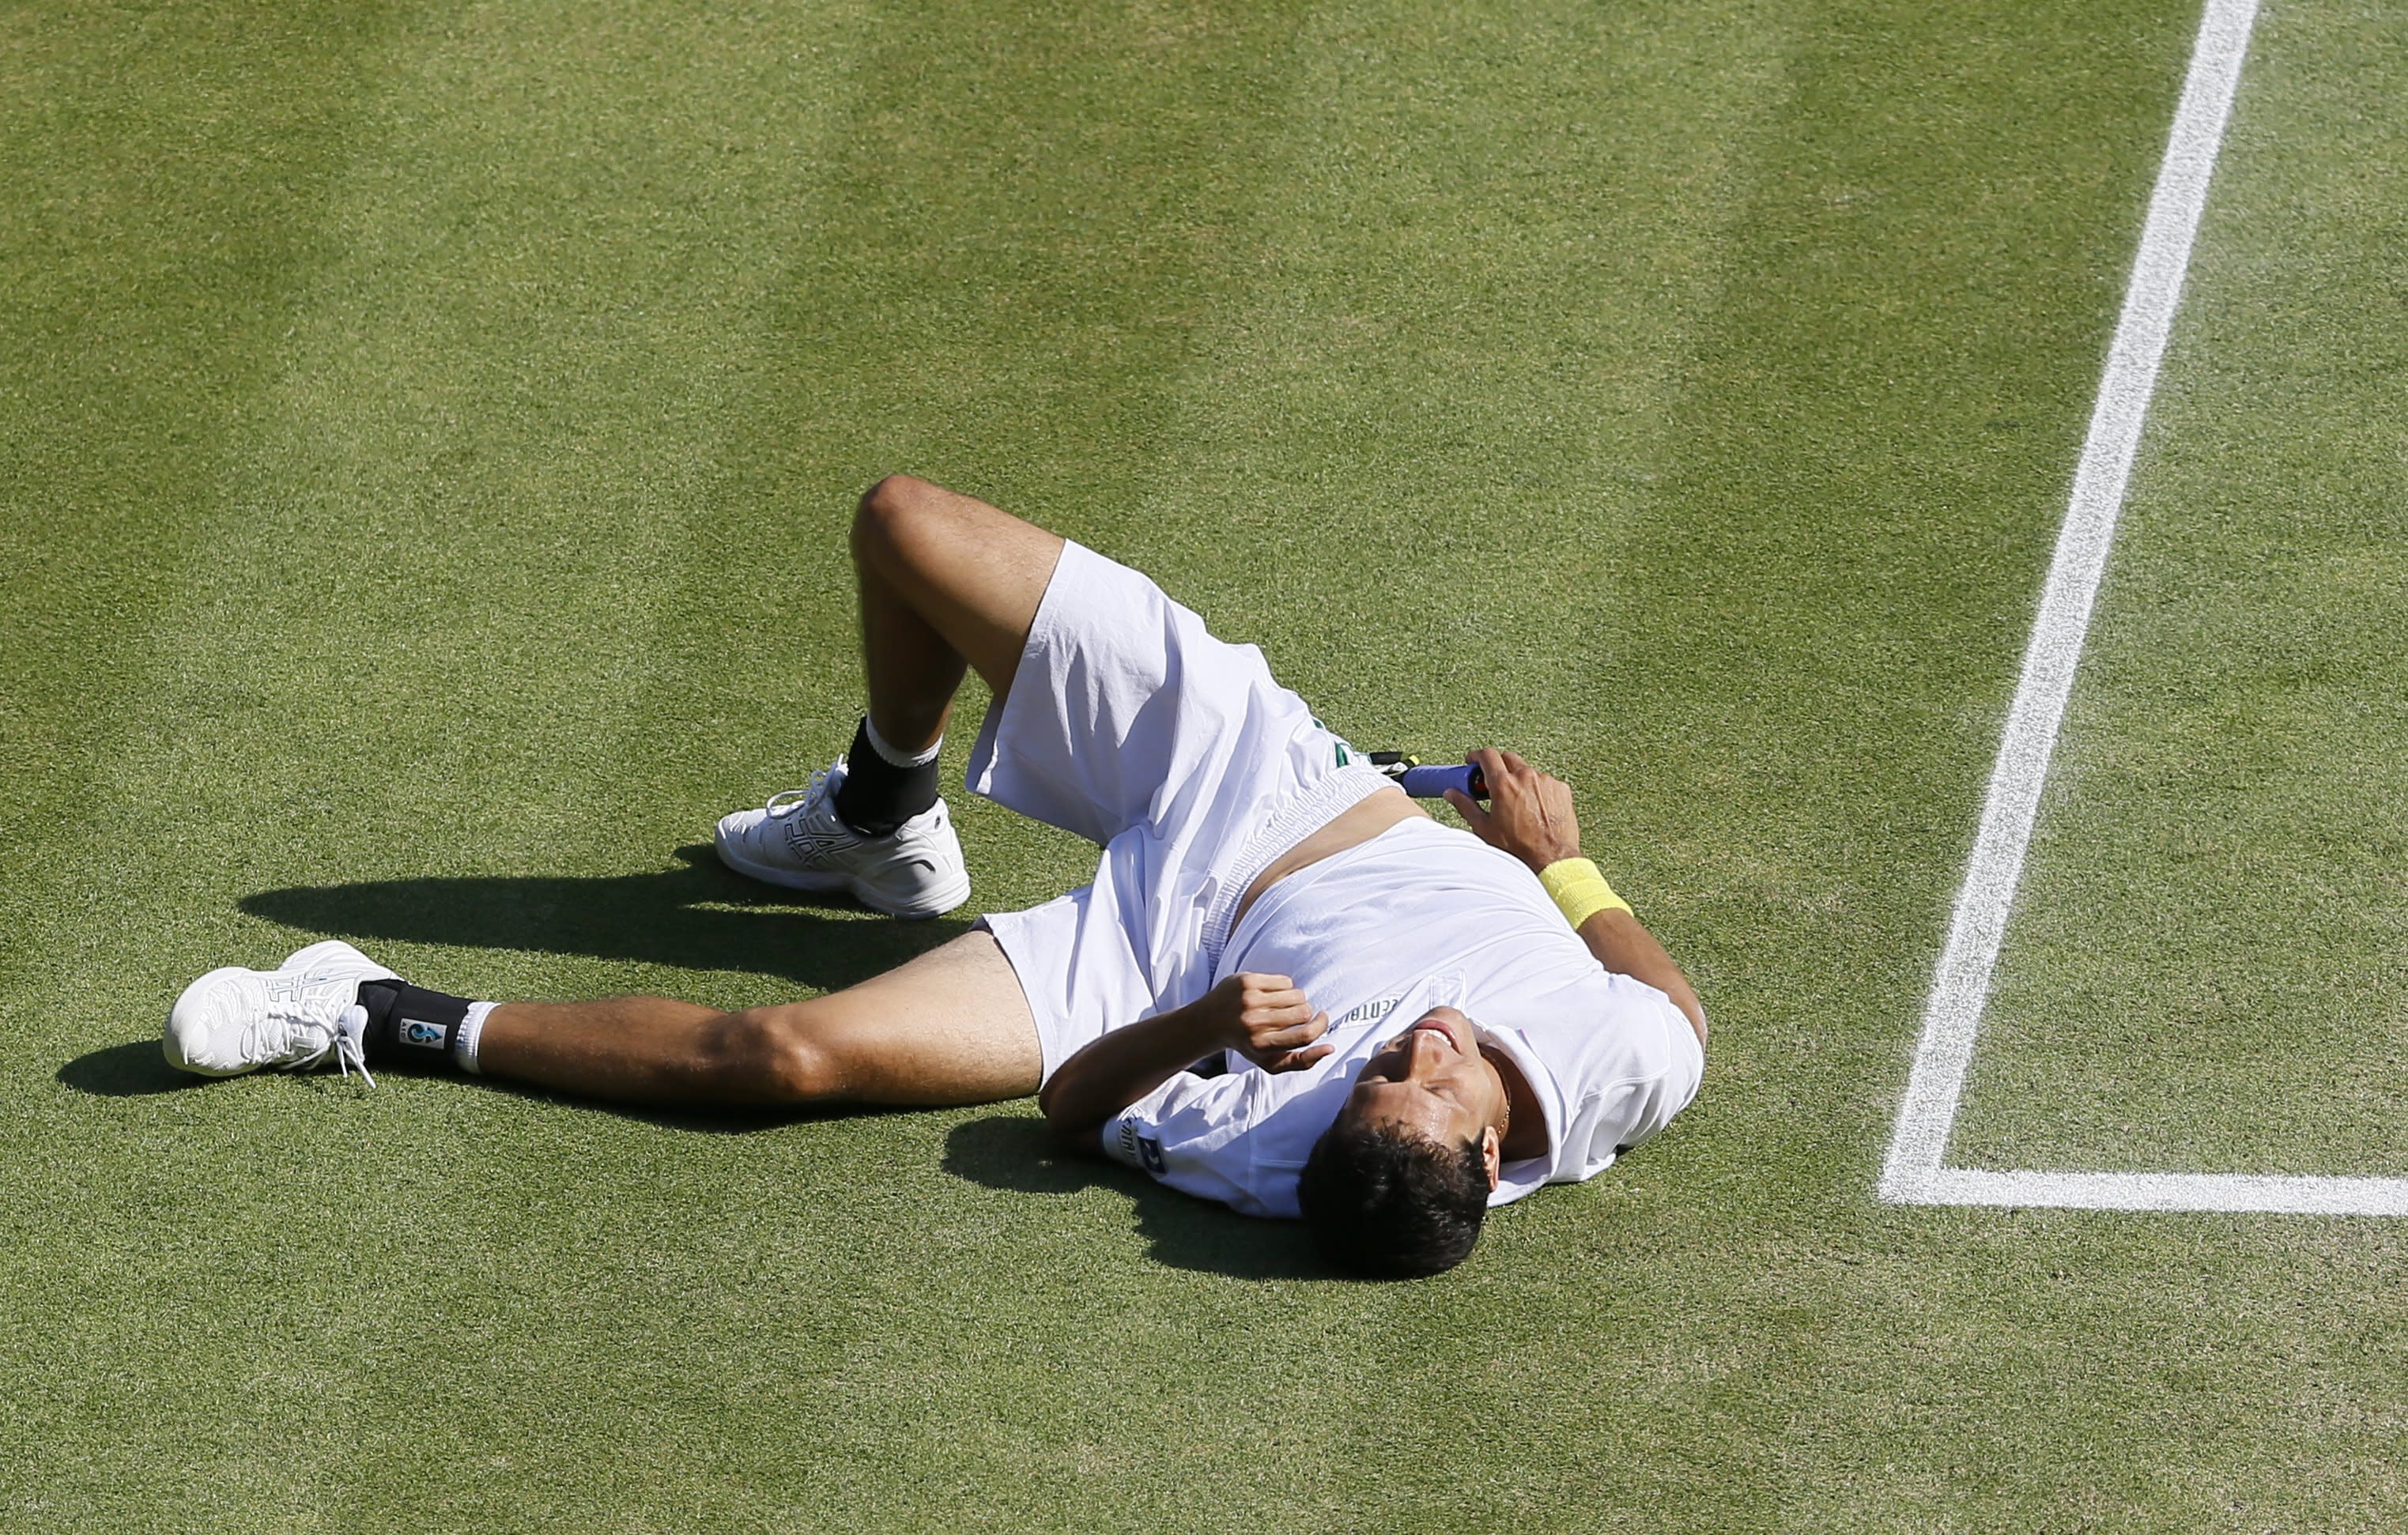 Marcelo Melo Brazil falls on the court as he as plays Bob Bryan of the United States and Mike Bryan of the United States during their Men's doubles final match at the All England Lawn Tennis Championships in Wimbledon, London, Saturday, July 6, 2013. (AP Photo/Kirsty Wigglesworth)